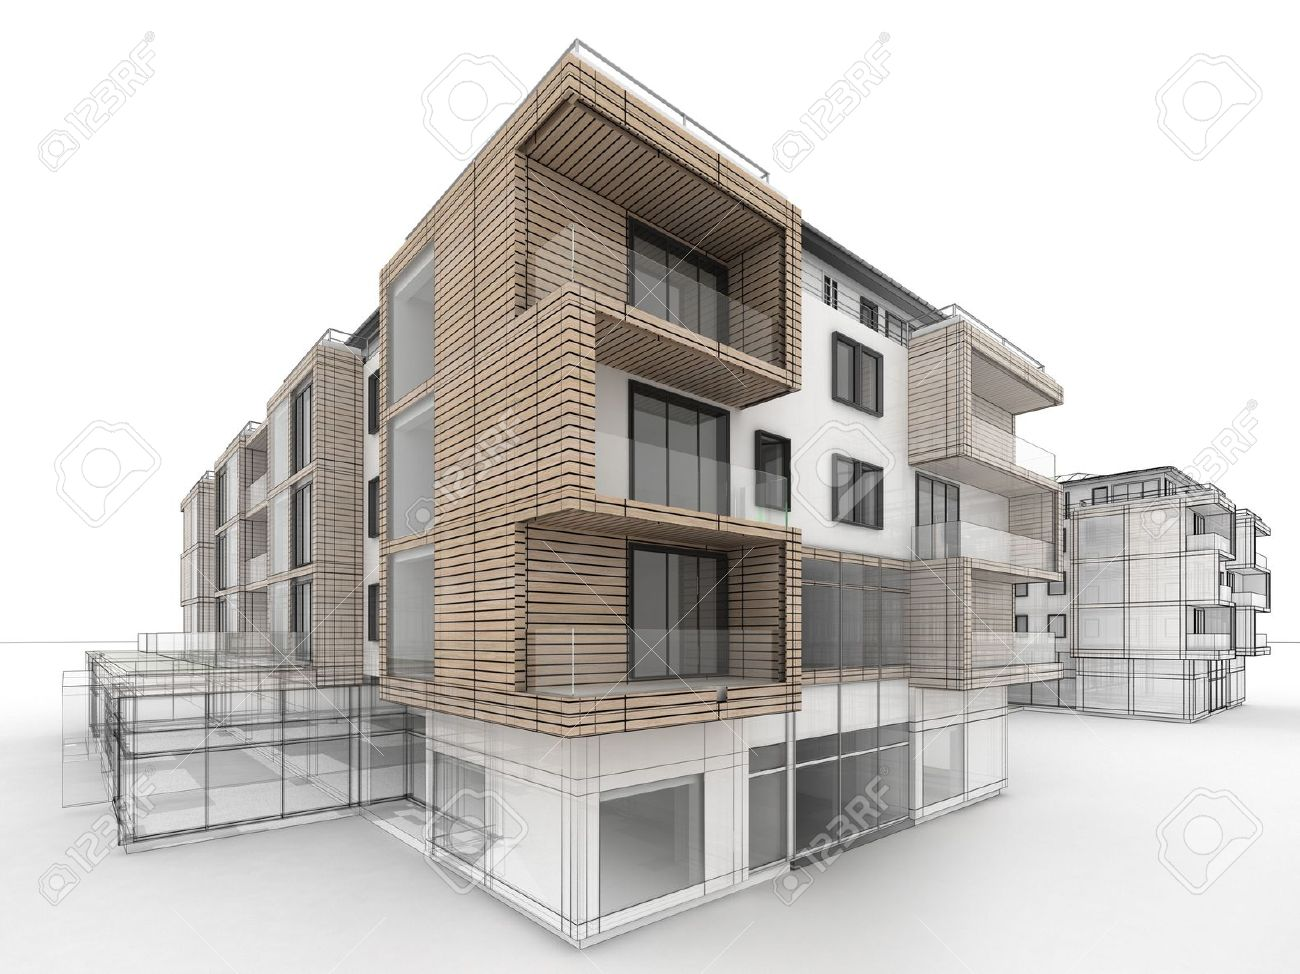 partment Building Design Progress, rchitecture Visualization ... - ^